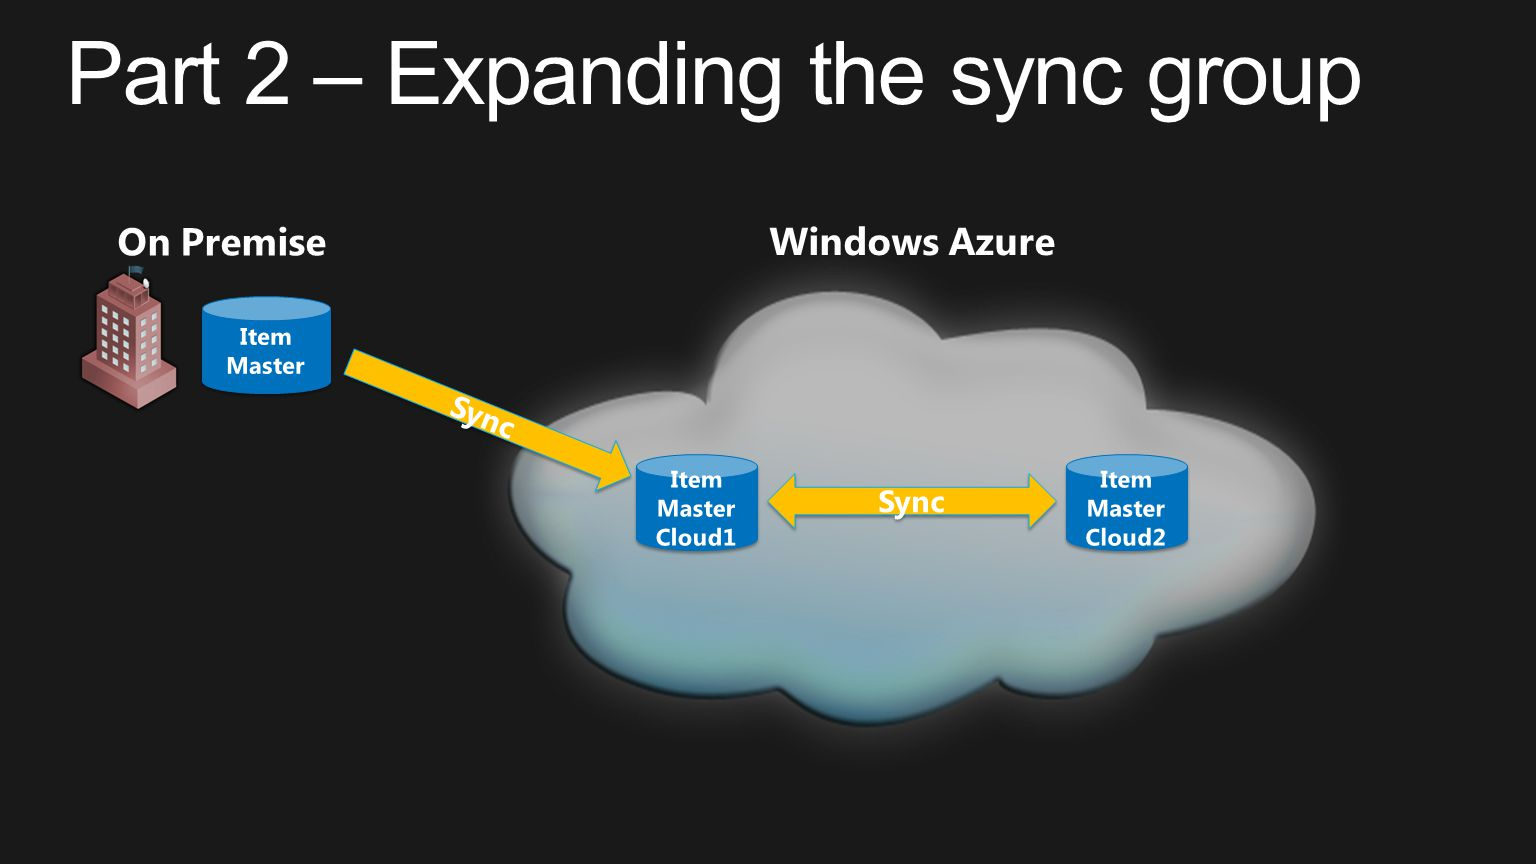 Part 2 – Expanding the sync group